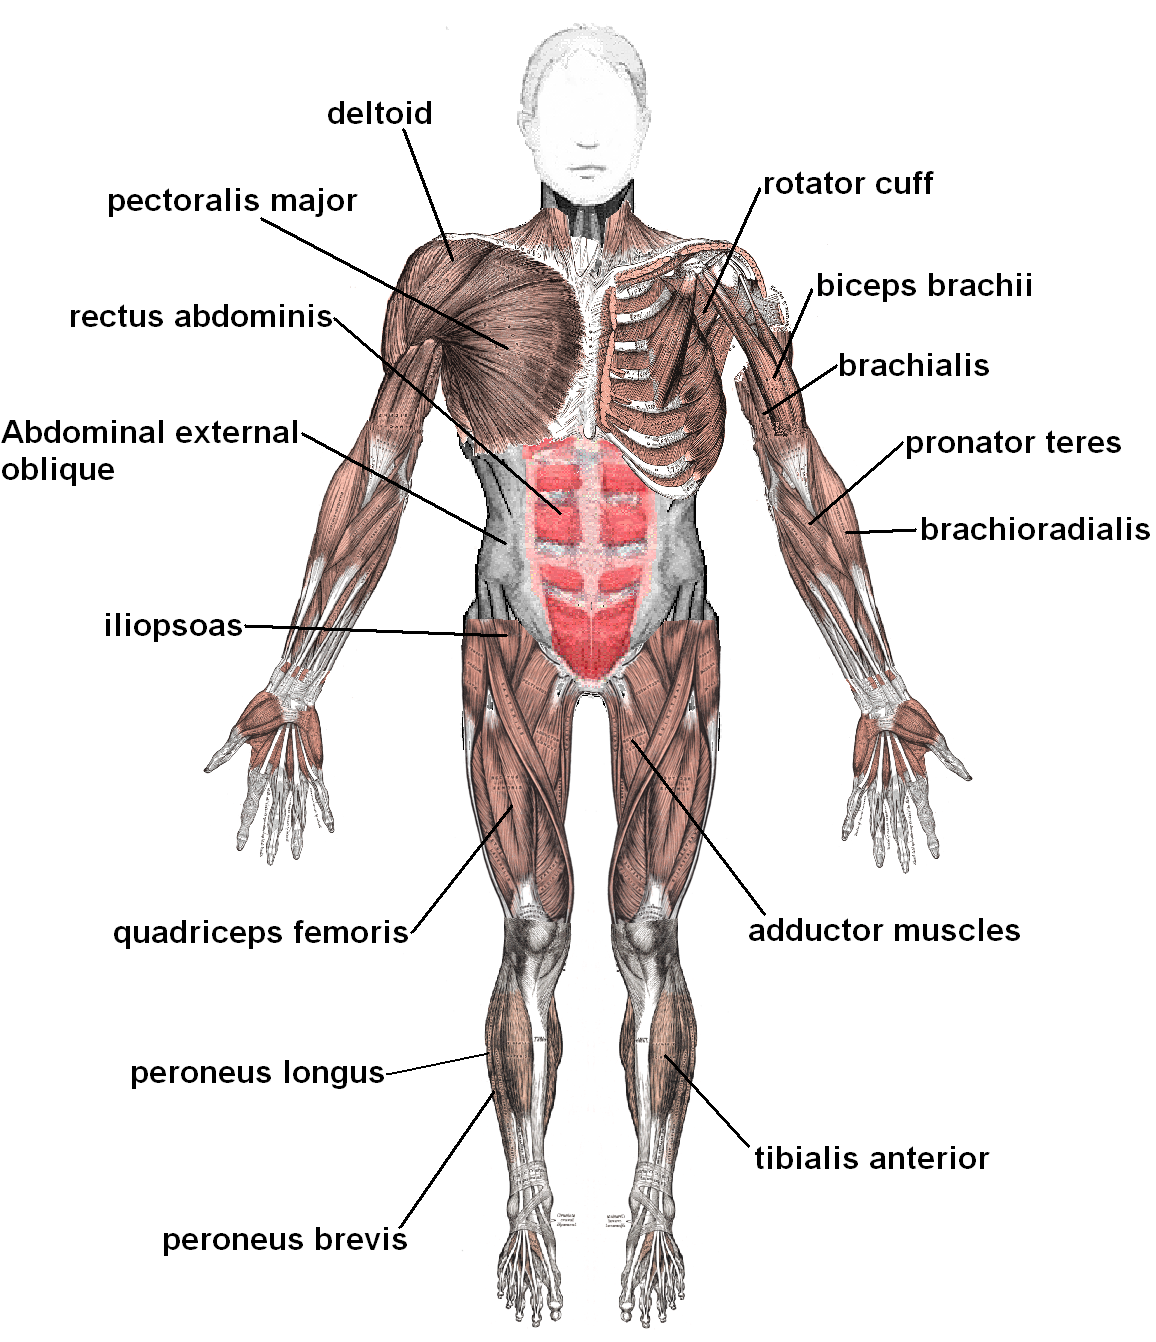 the basic muscles in the human body | these bones of mine, Muscles